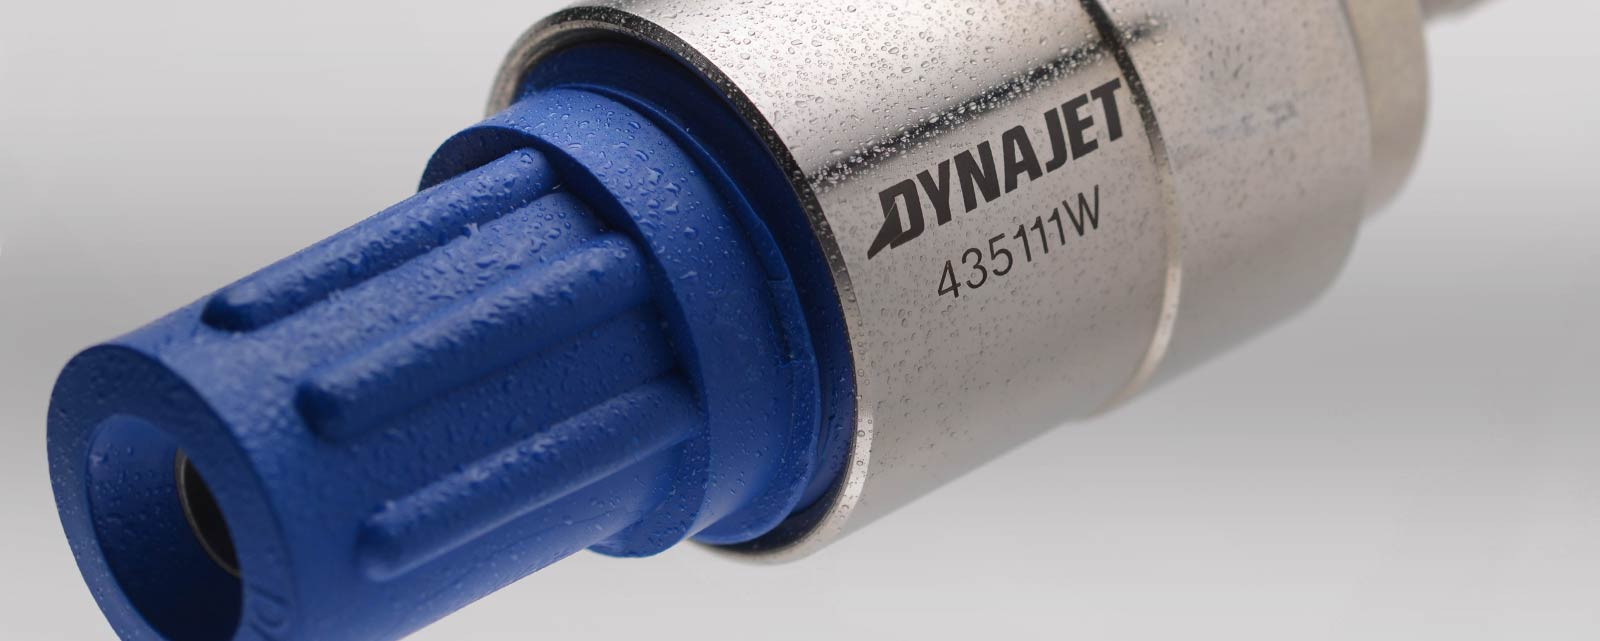 DYNAJET WSS500 and WSS1000 water sandblasting systems are fast and efficient at cleaning, paint stripping, removing rust or preparing substrates.